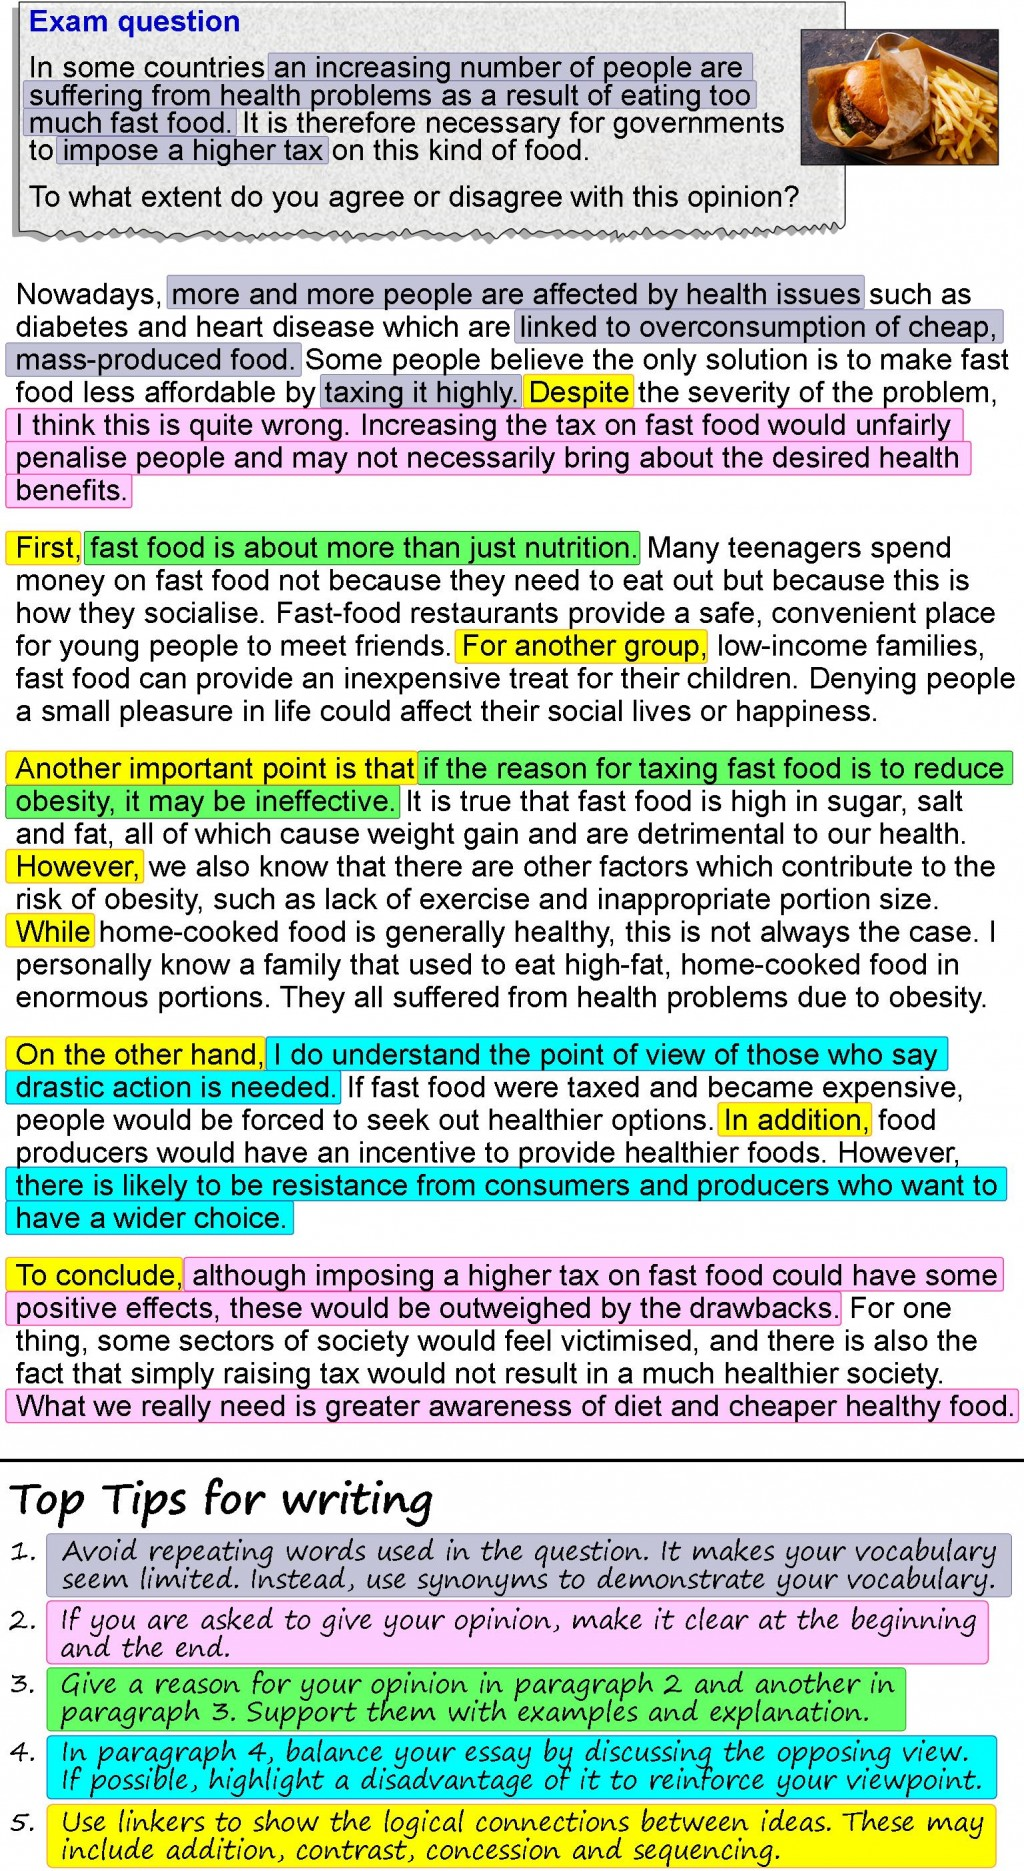 001 Opinion Essay About Fast Food Example An 4 Unbelievable Restaurants Large